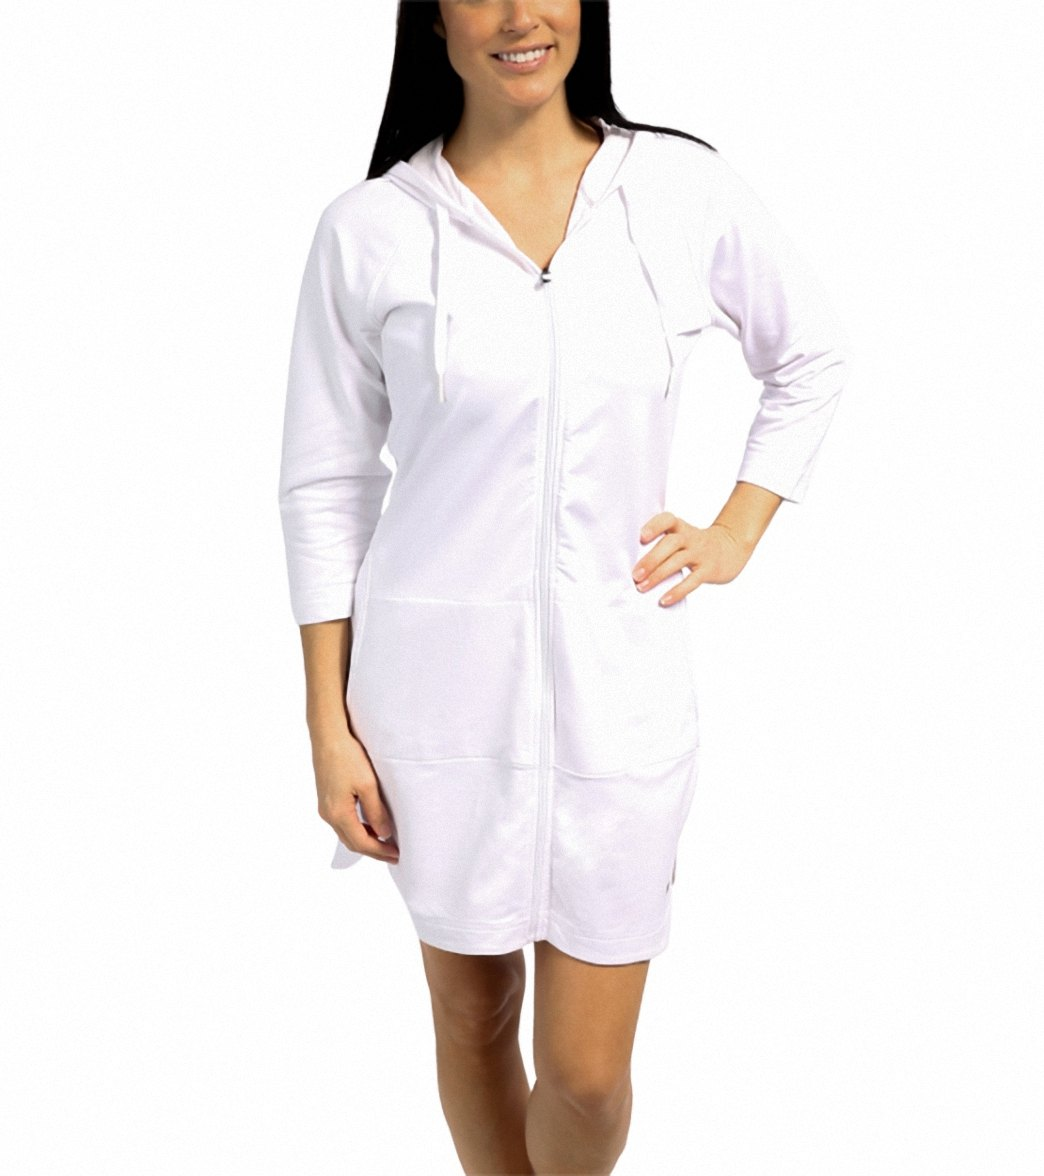 Speedo Aquatic Fitness Robe with Hood at SwimOutlet.com 732554f8f